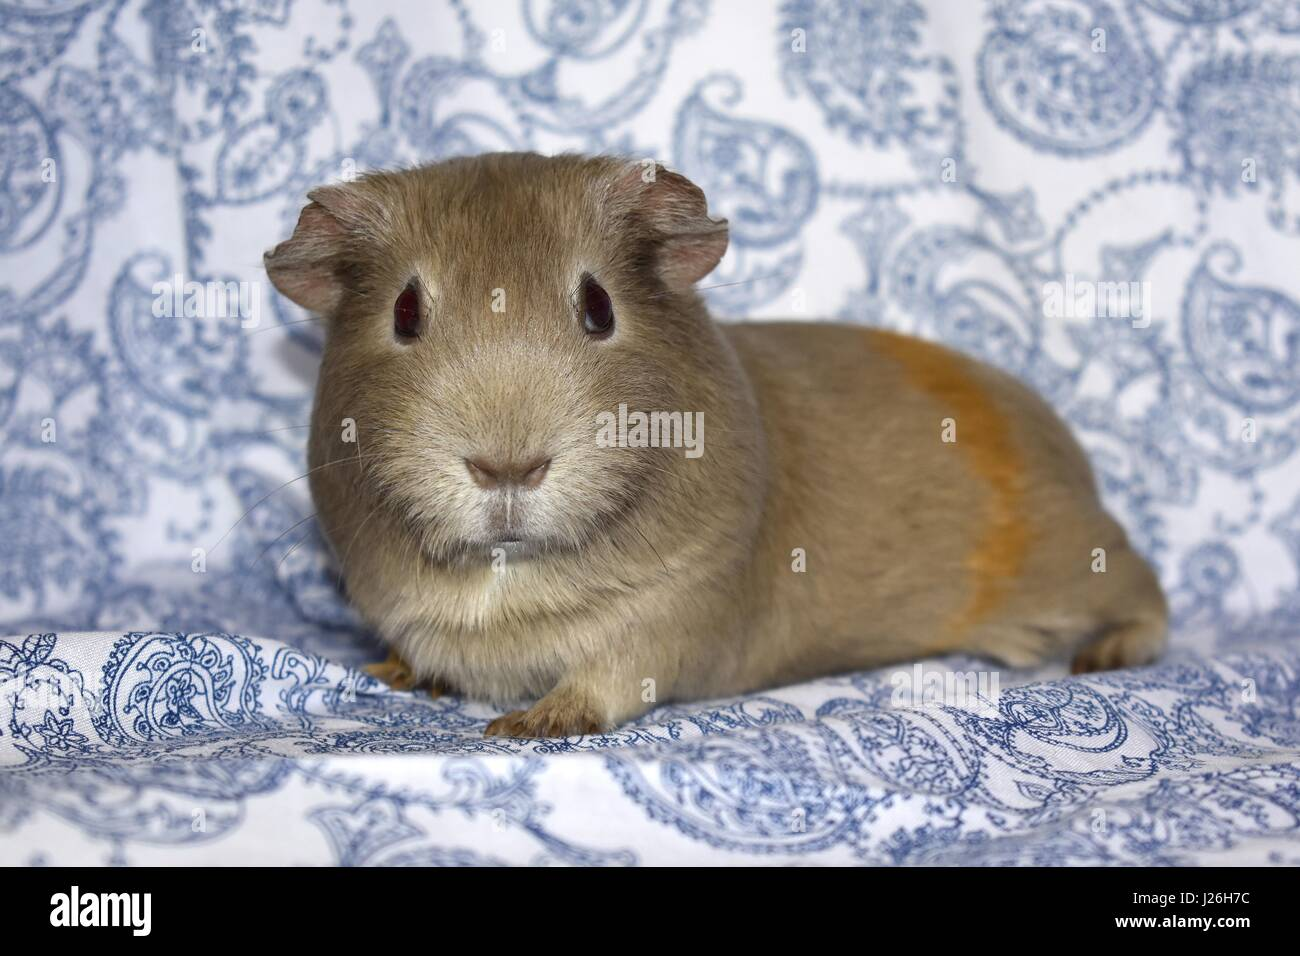 Guinea pigs relaxed on a paisley blue background - Stock Image